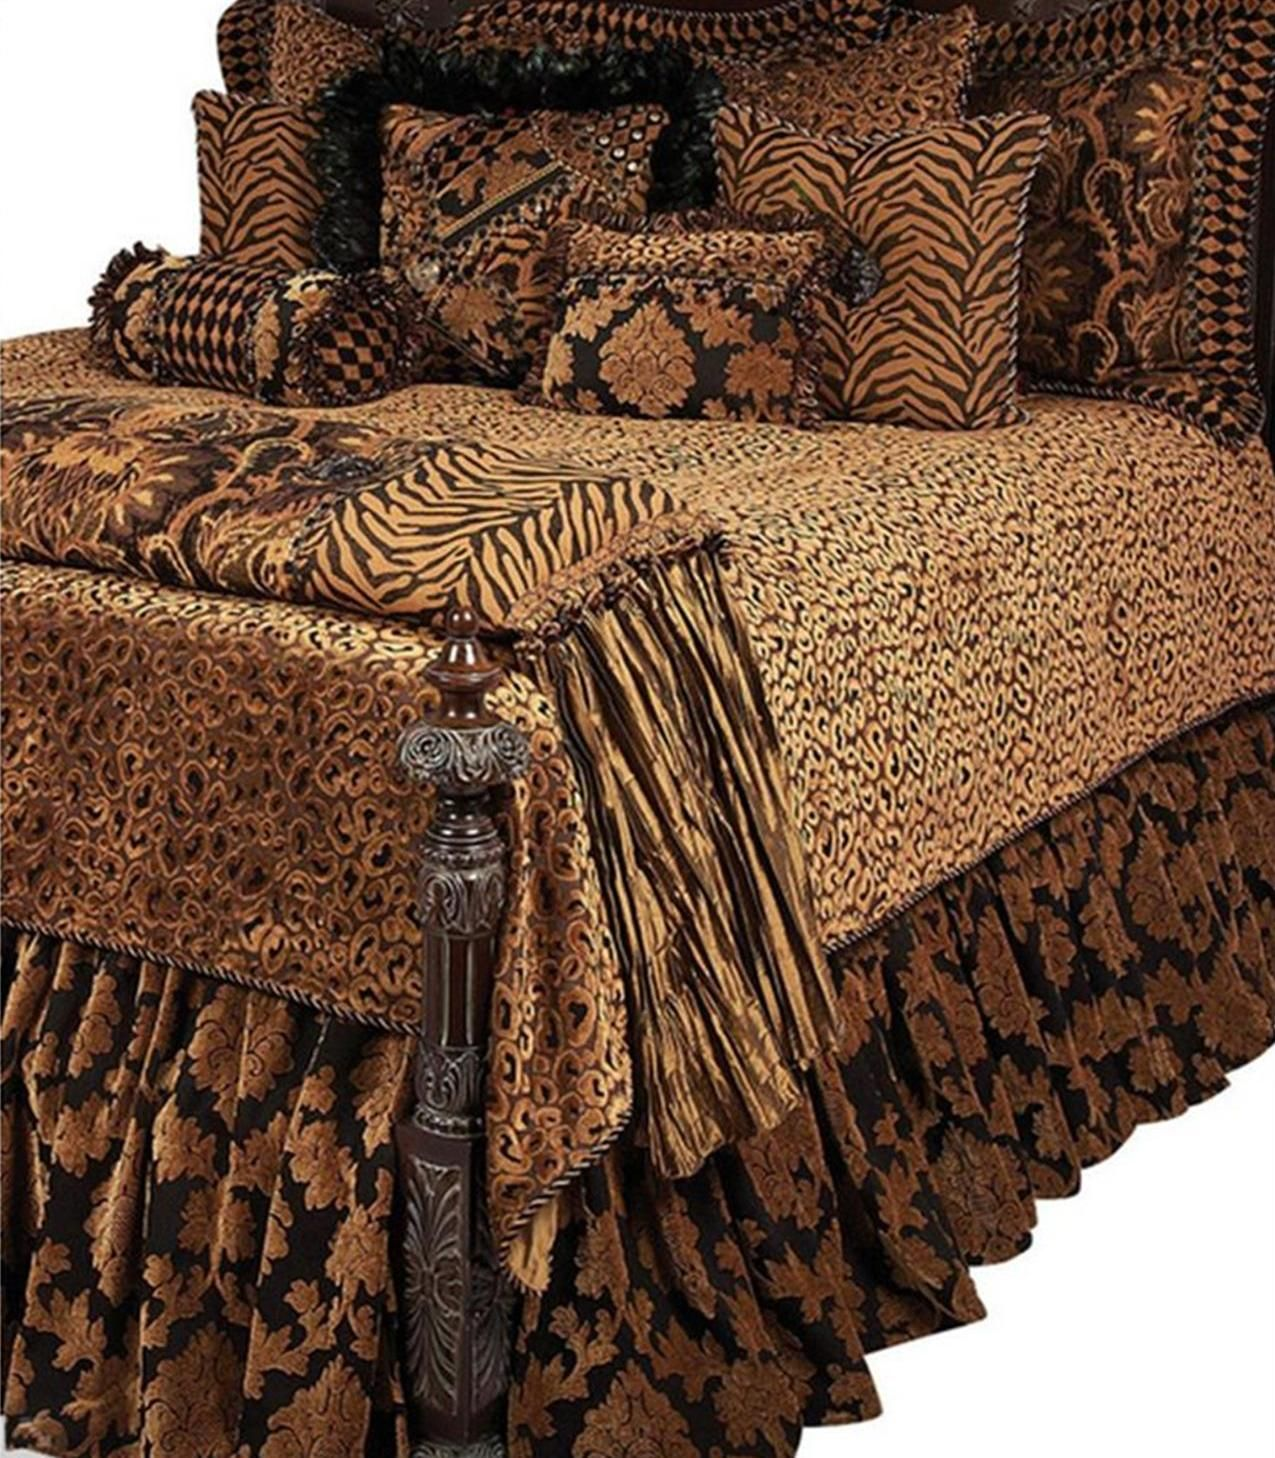 Luxury High End Bedding, Accent Pillows and Accessories by